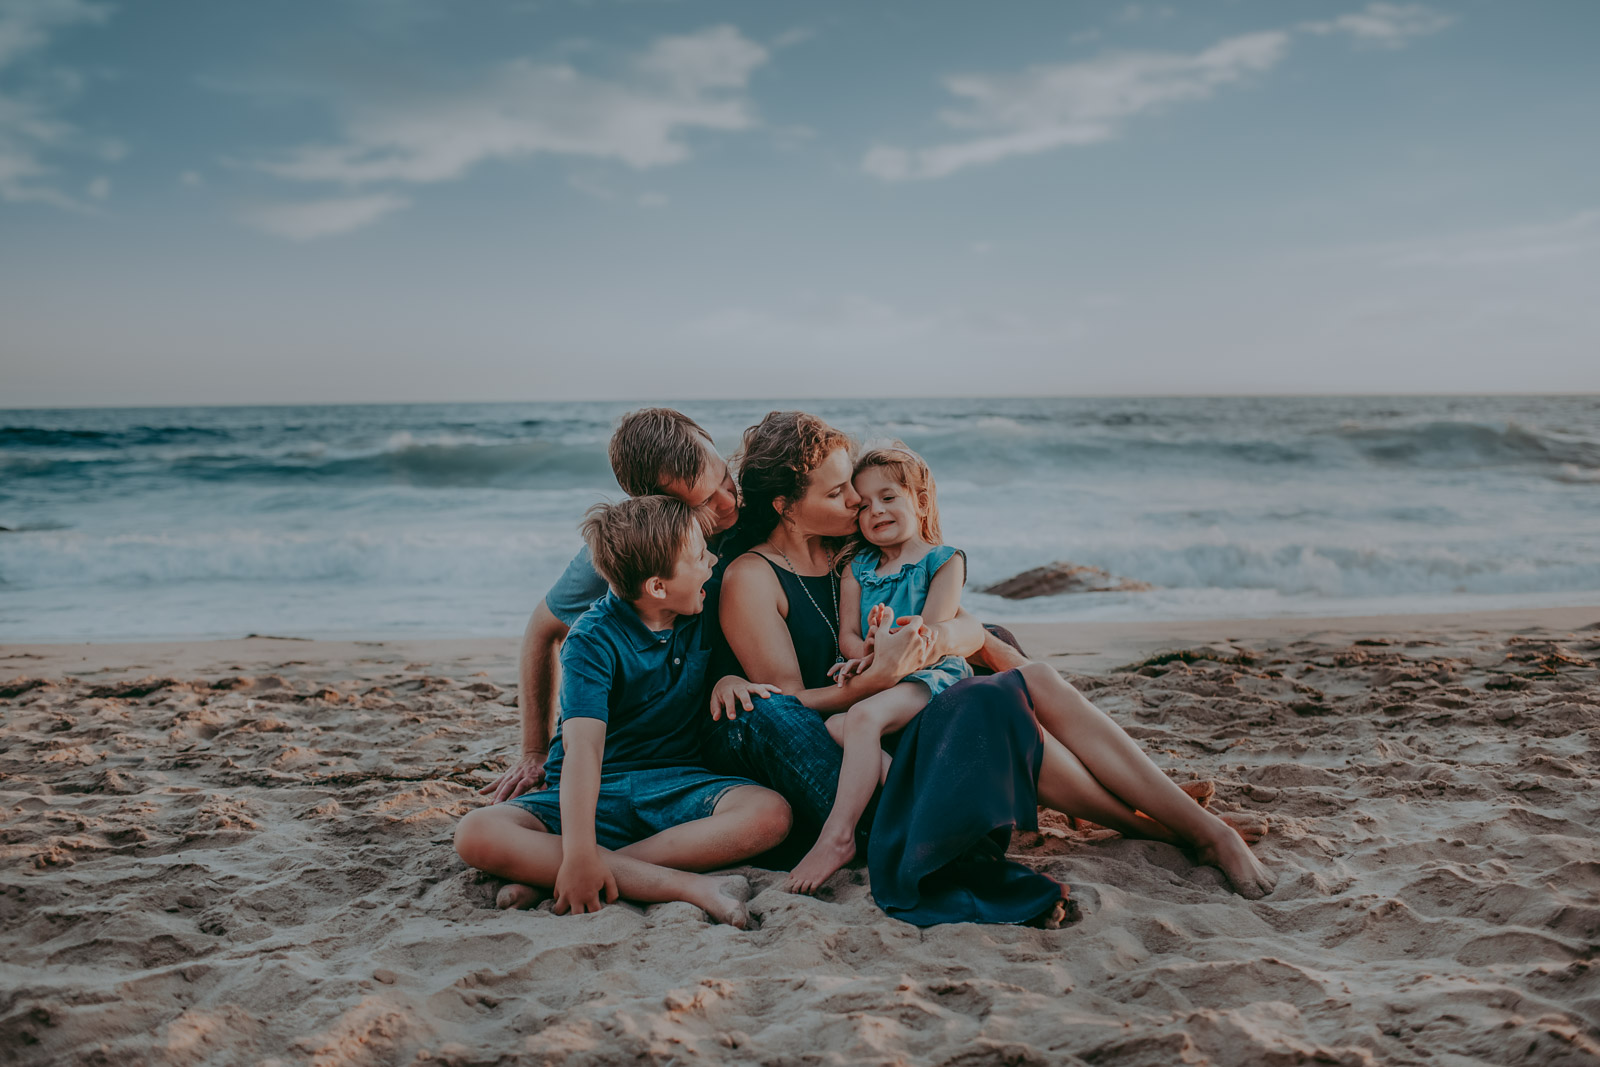 A family poses on the beach — How to photograph families of special needs children